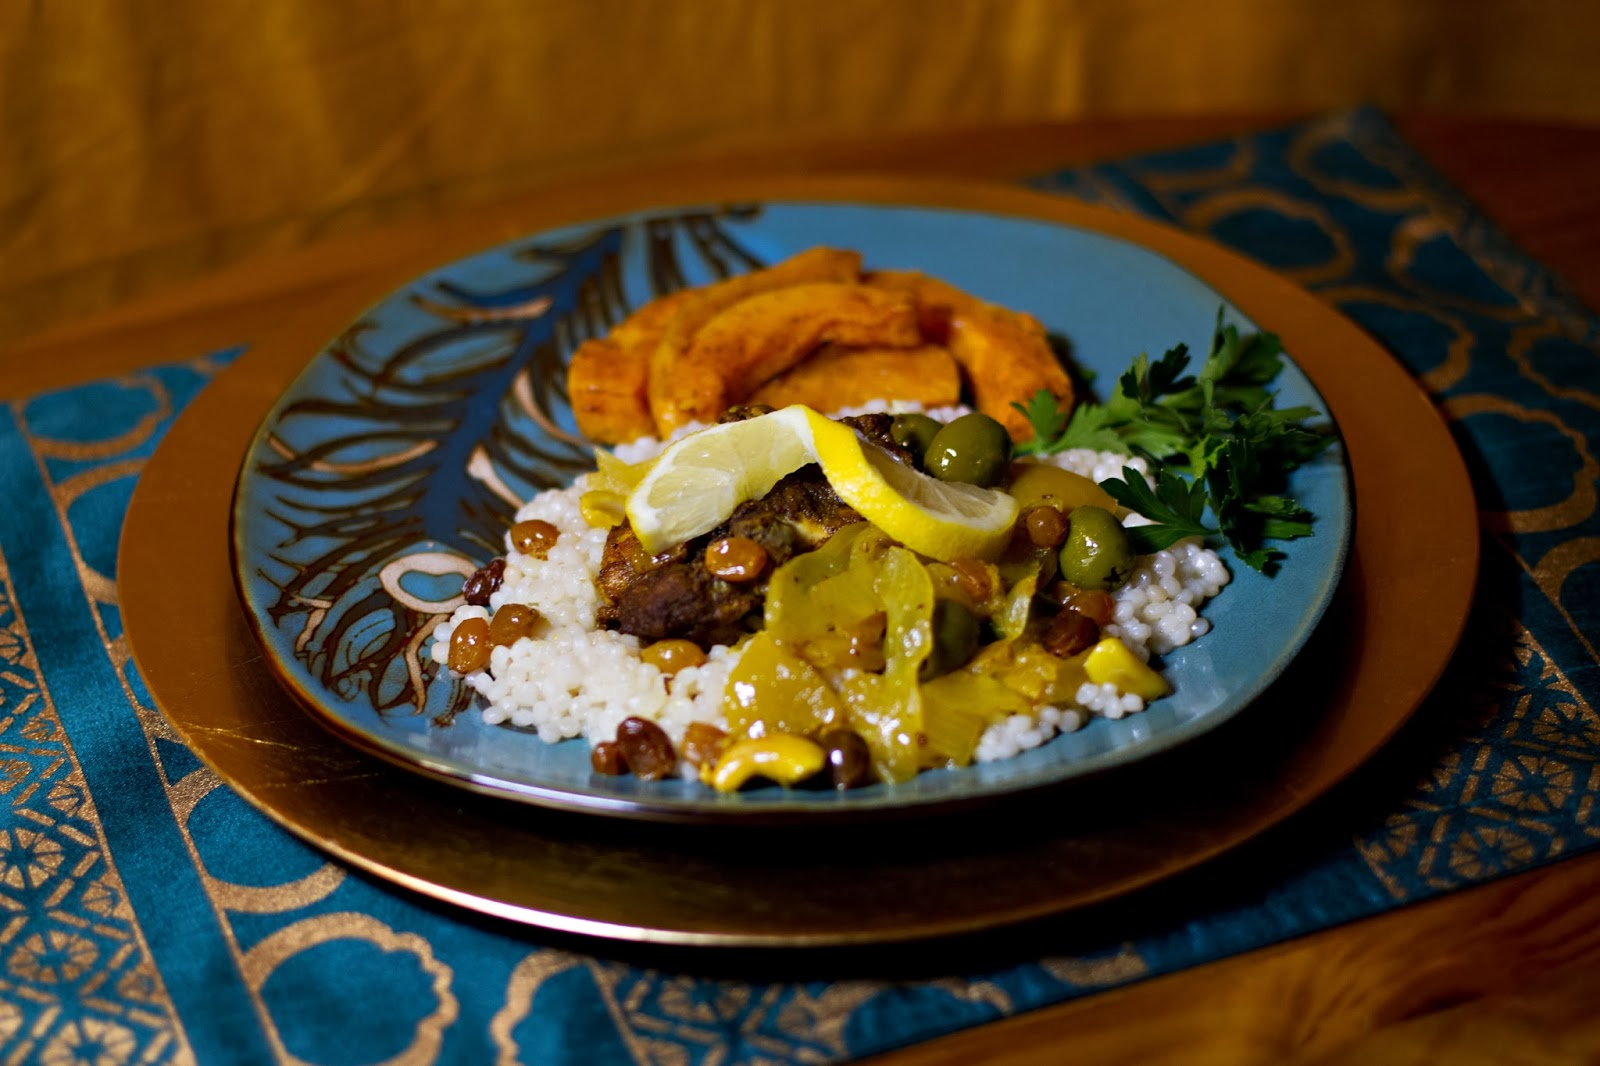 37 Cooks: Slow Cooker Moroccan Chicken With Preserved Lemons & Olives